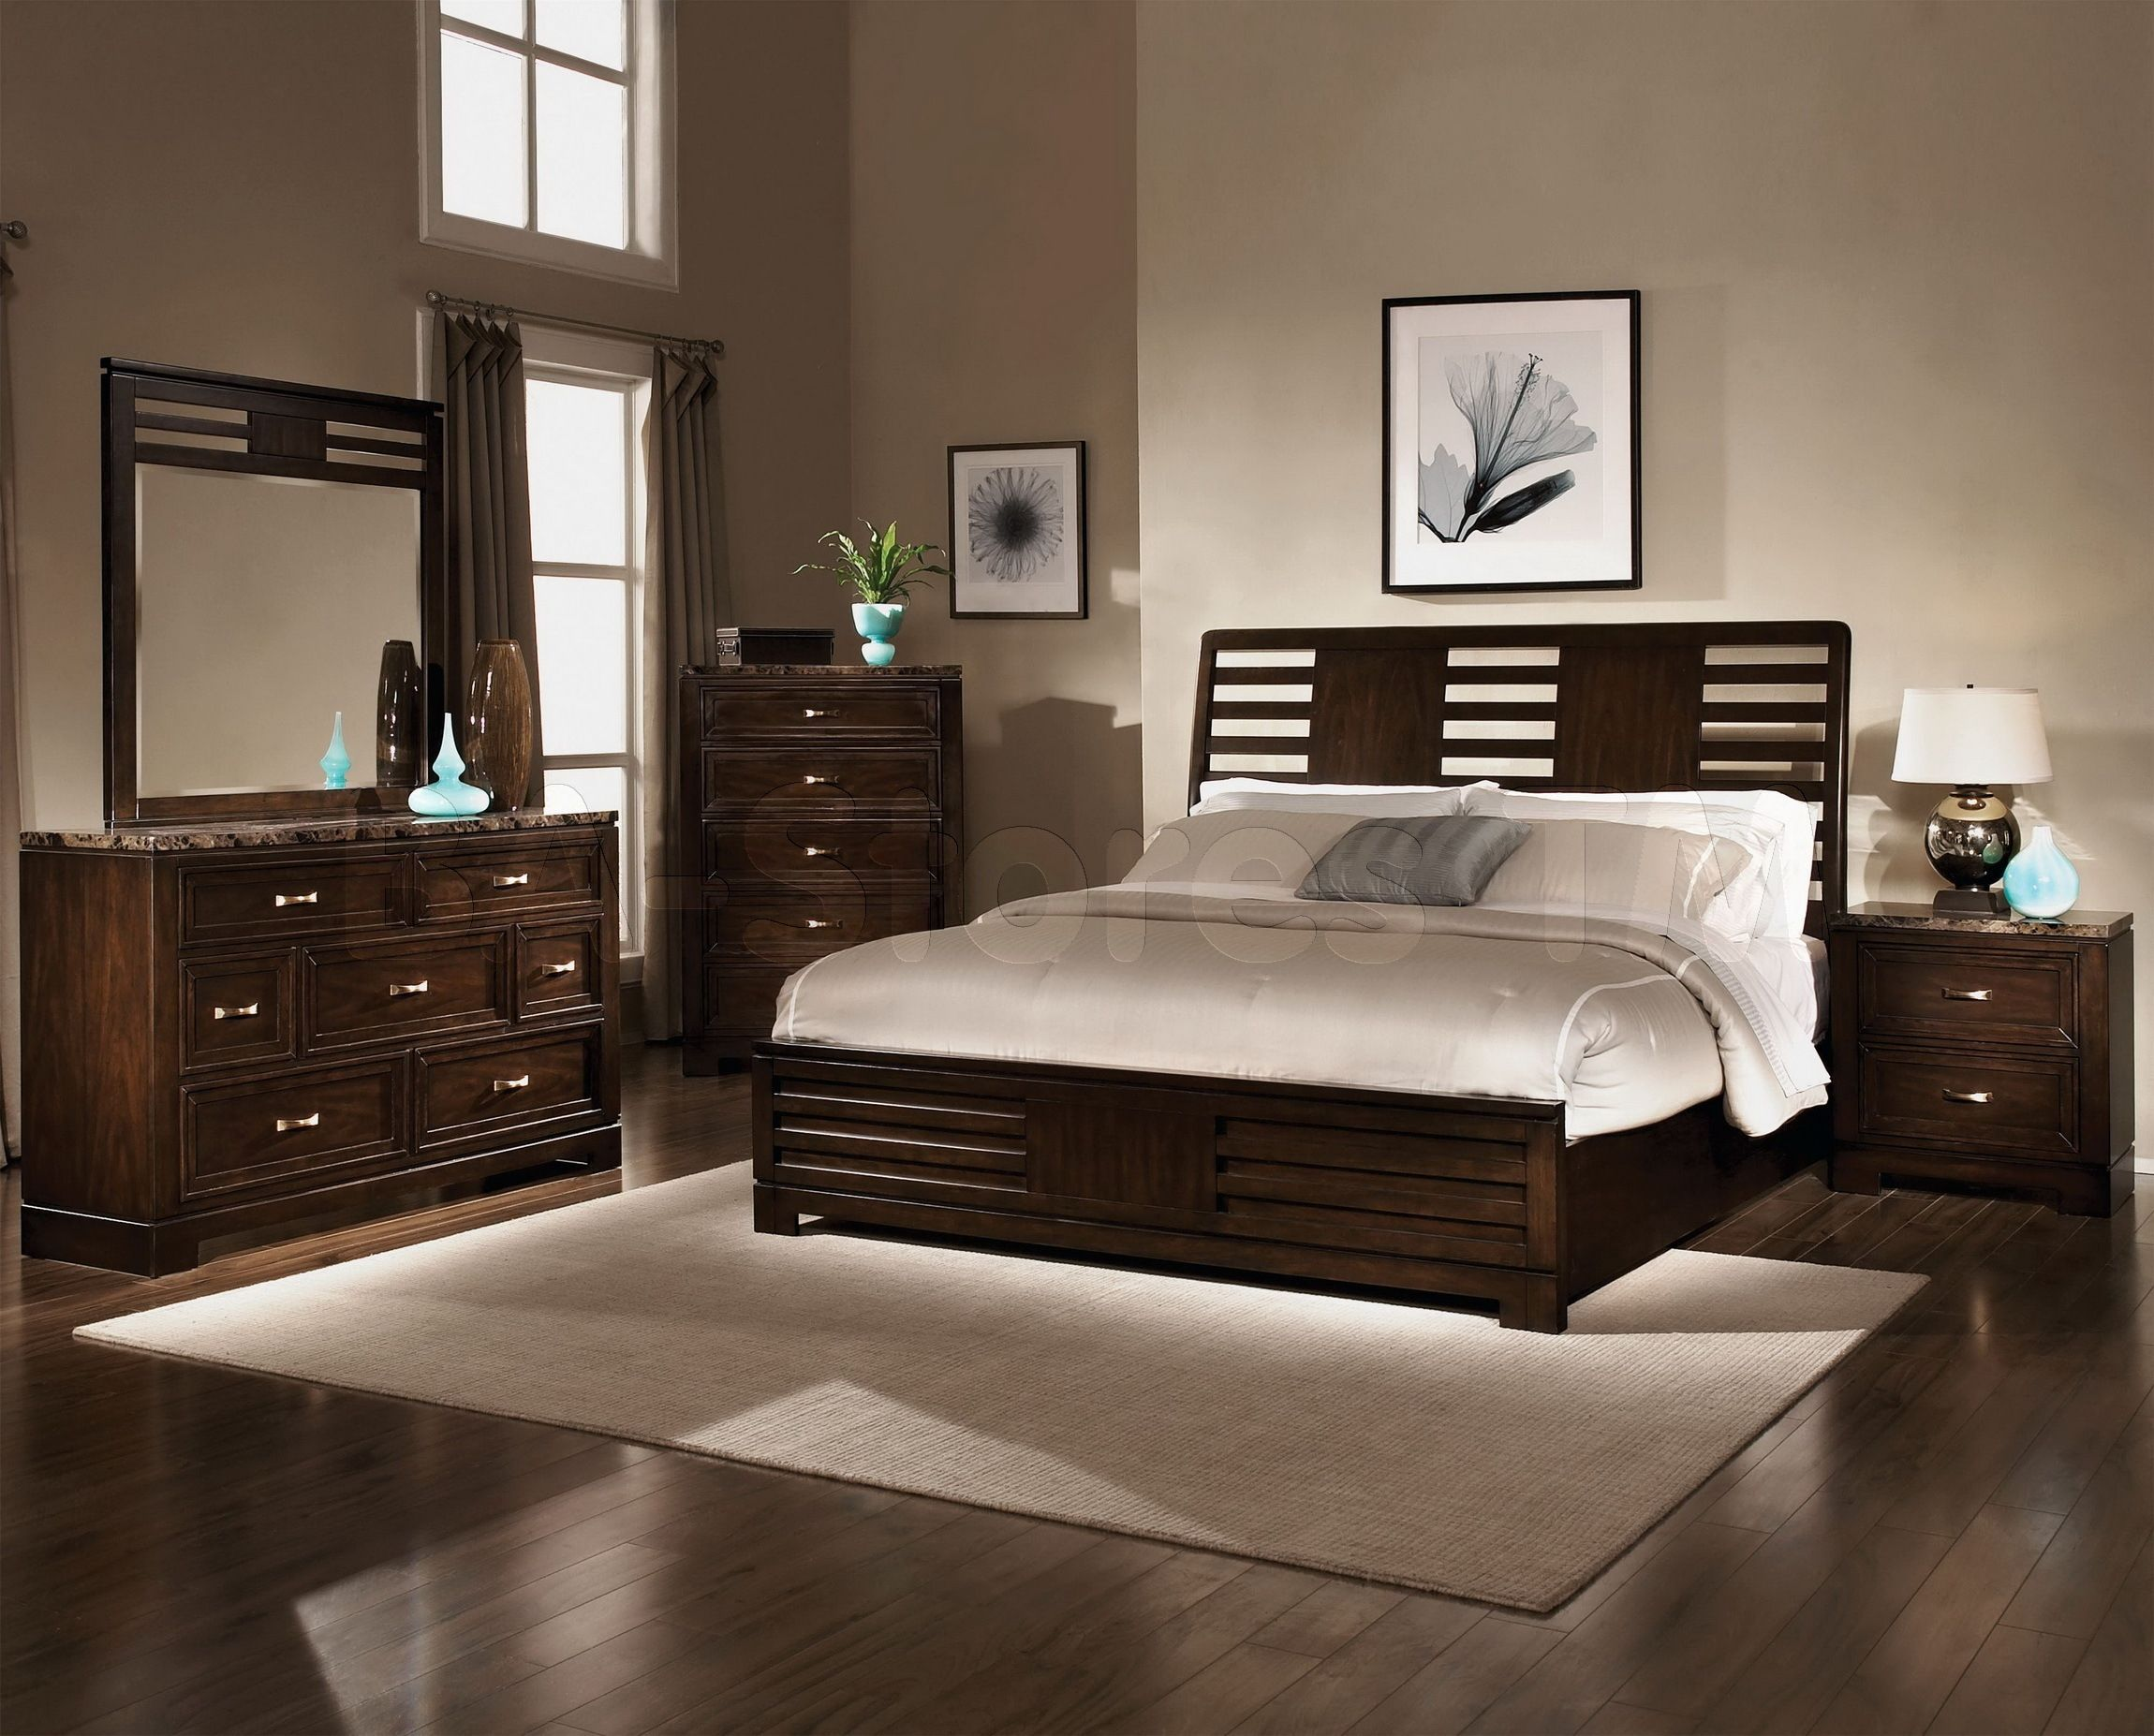 Luxury Bedroom Decorating Ideas Dark Brown Dressing Table Modern Brown Furniture Bedroom Dark Bedroom Furniture Master Bedroom Furniture